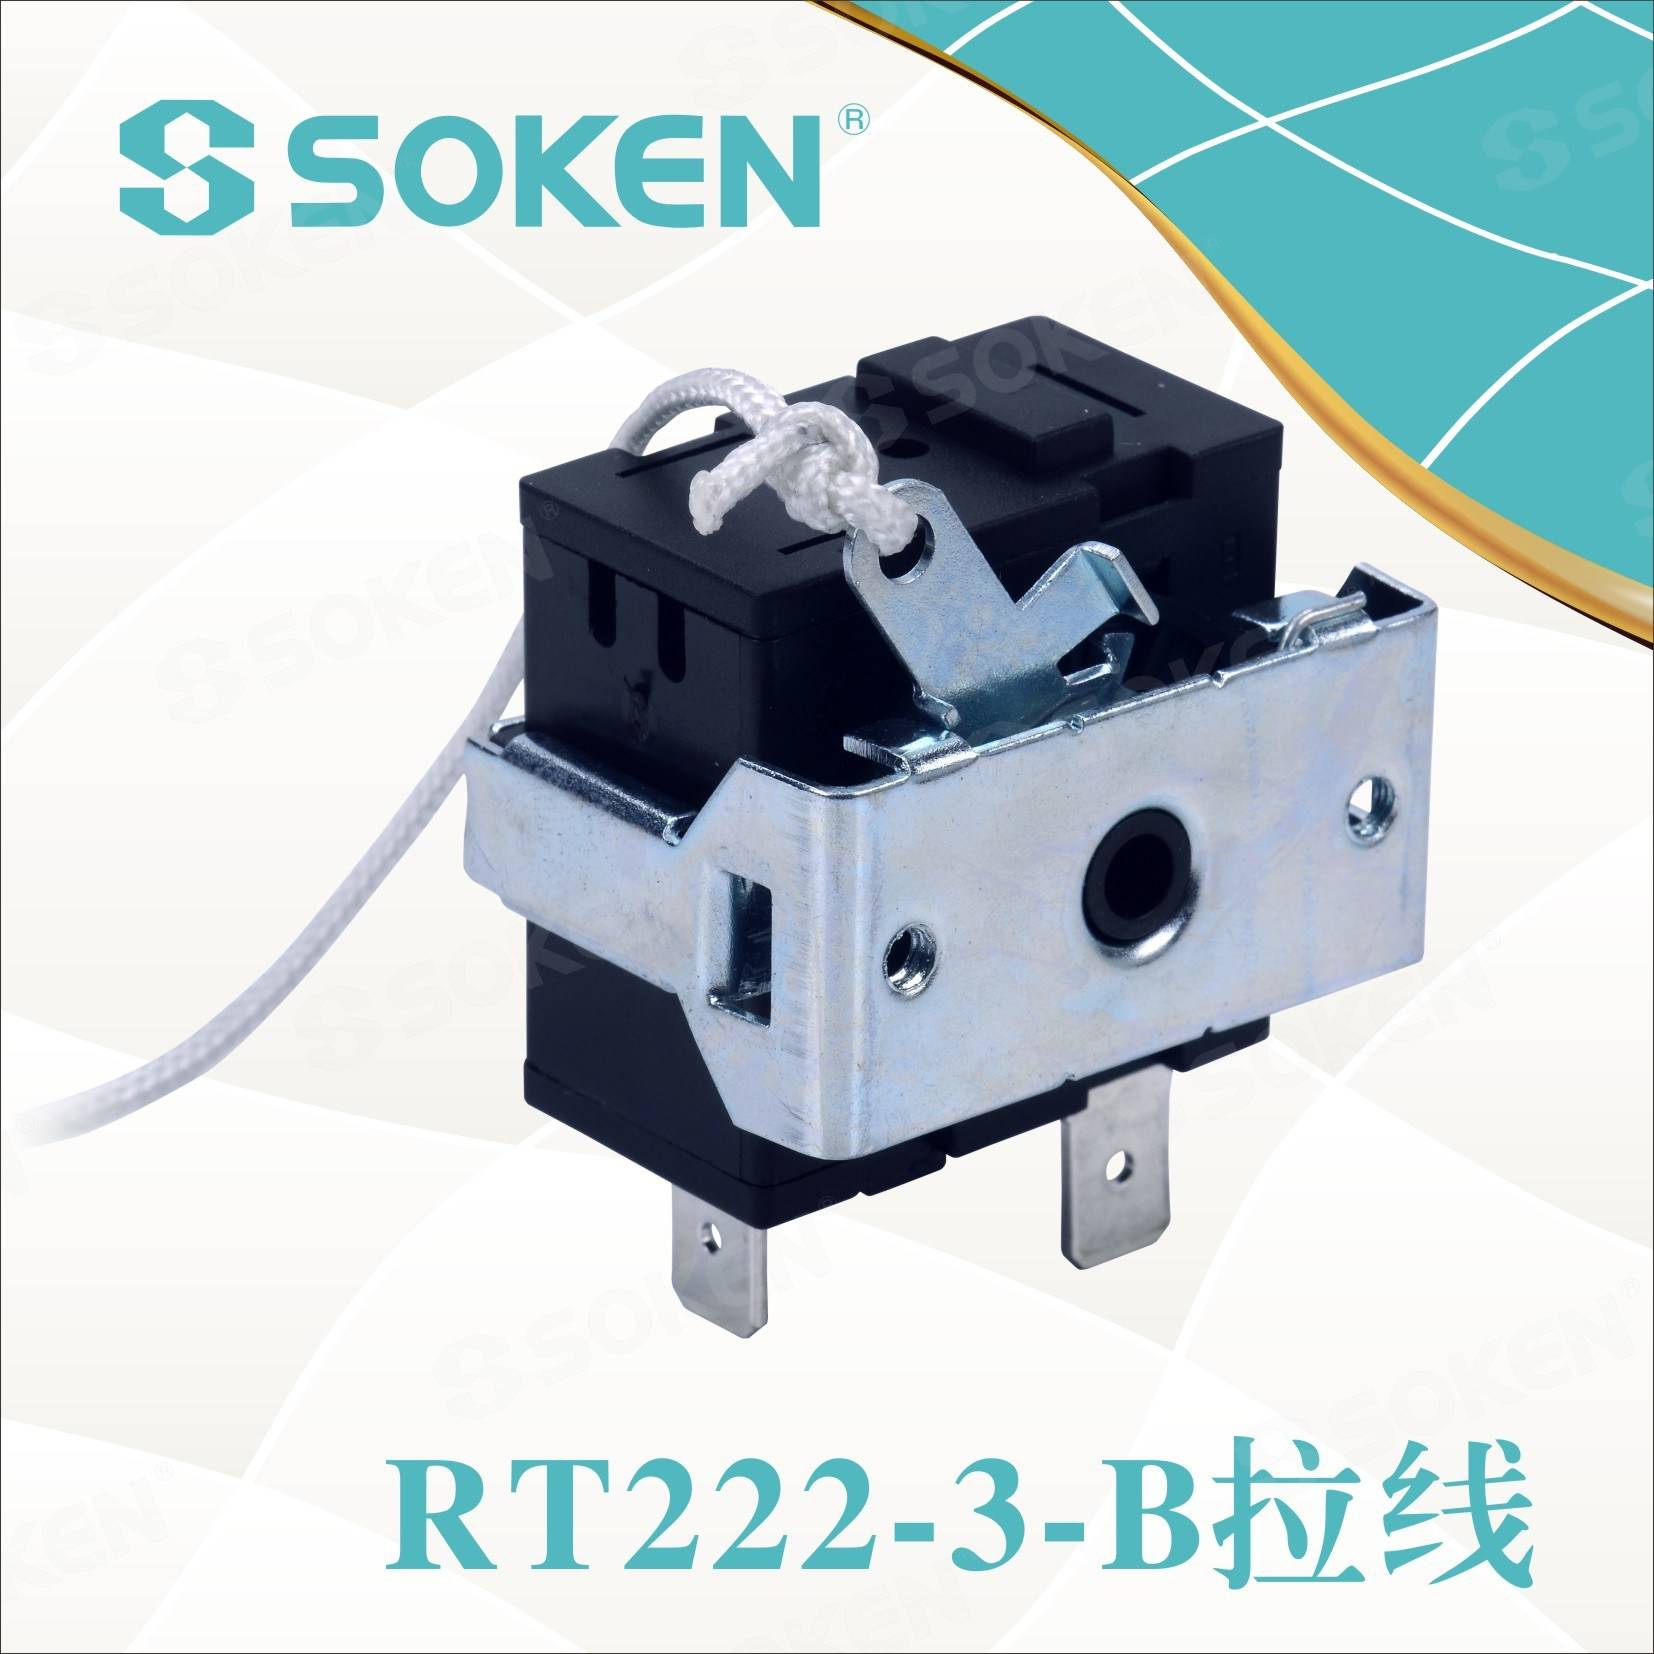 Soken 12 Position Ja Sarkar Rotary Switch